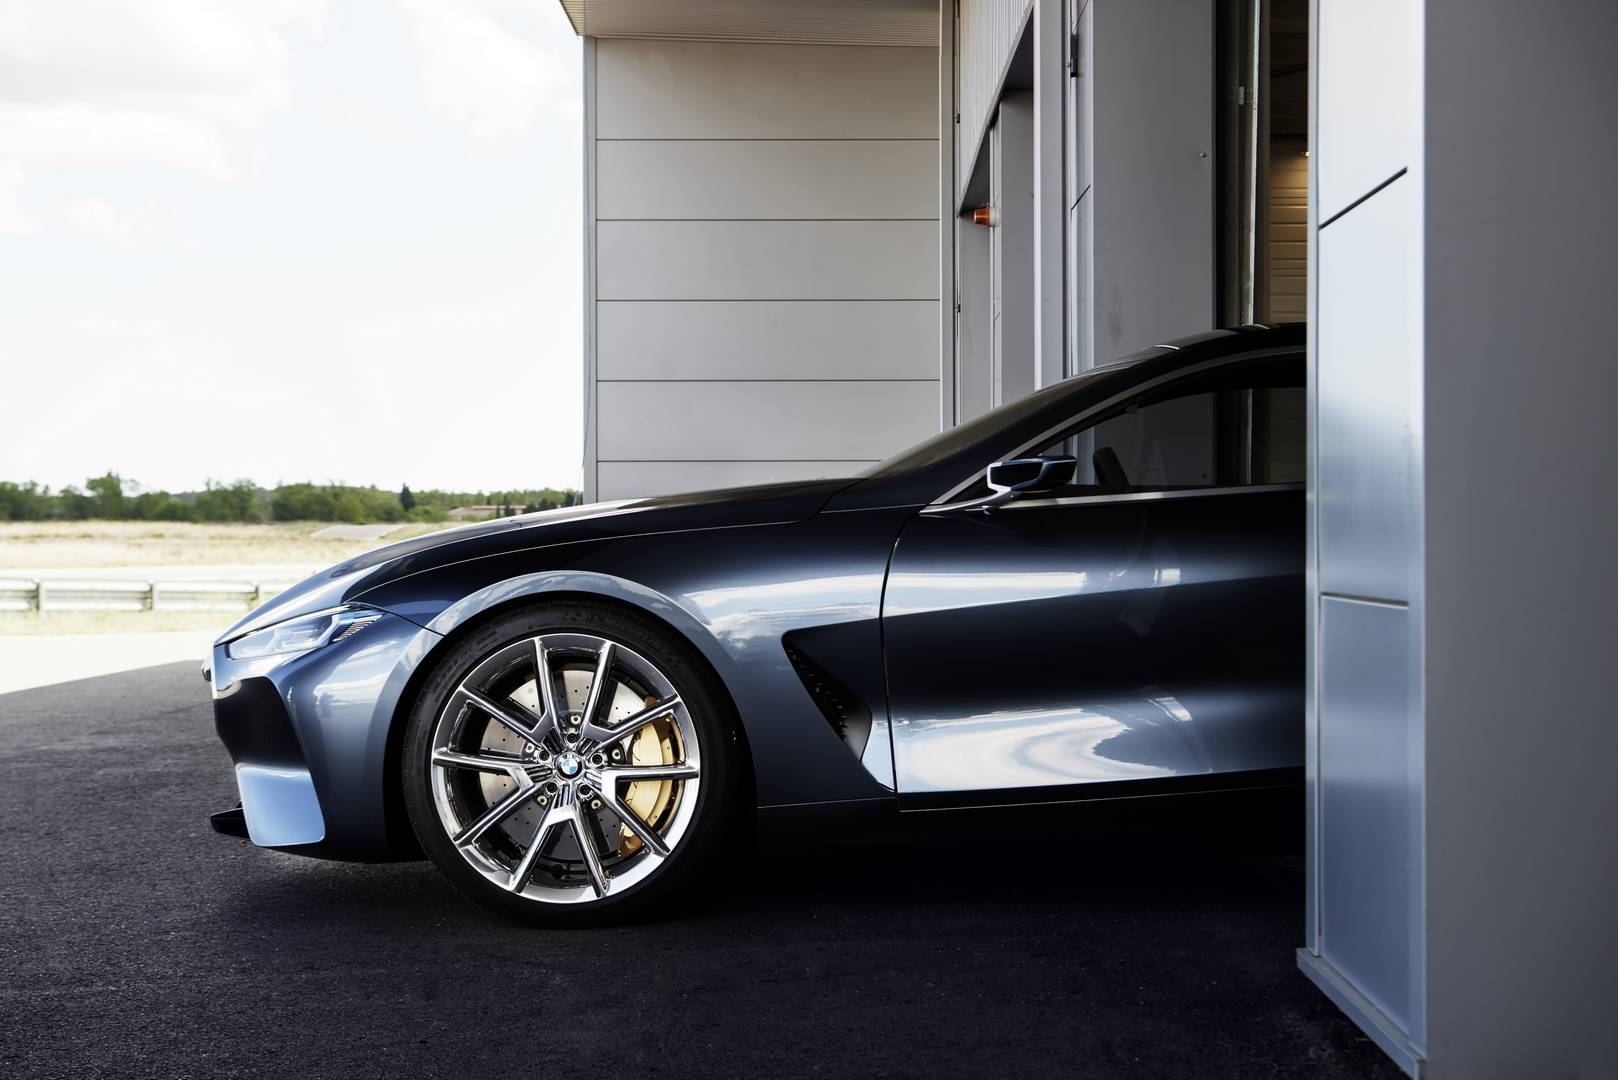 Bmw 850i 2017 >> Official: BMW Concept 8-Series: The Return of the 8 - GTspirit